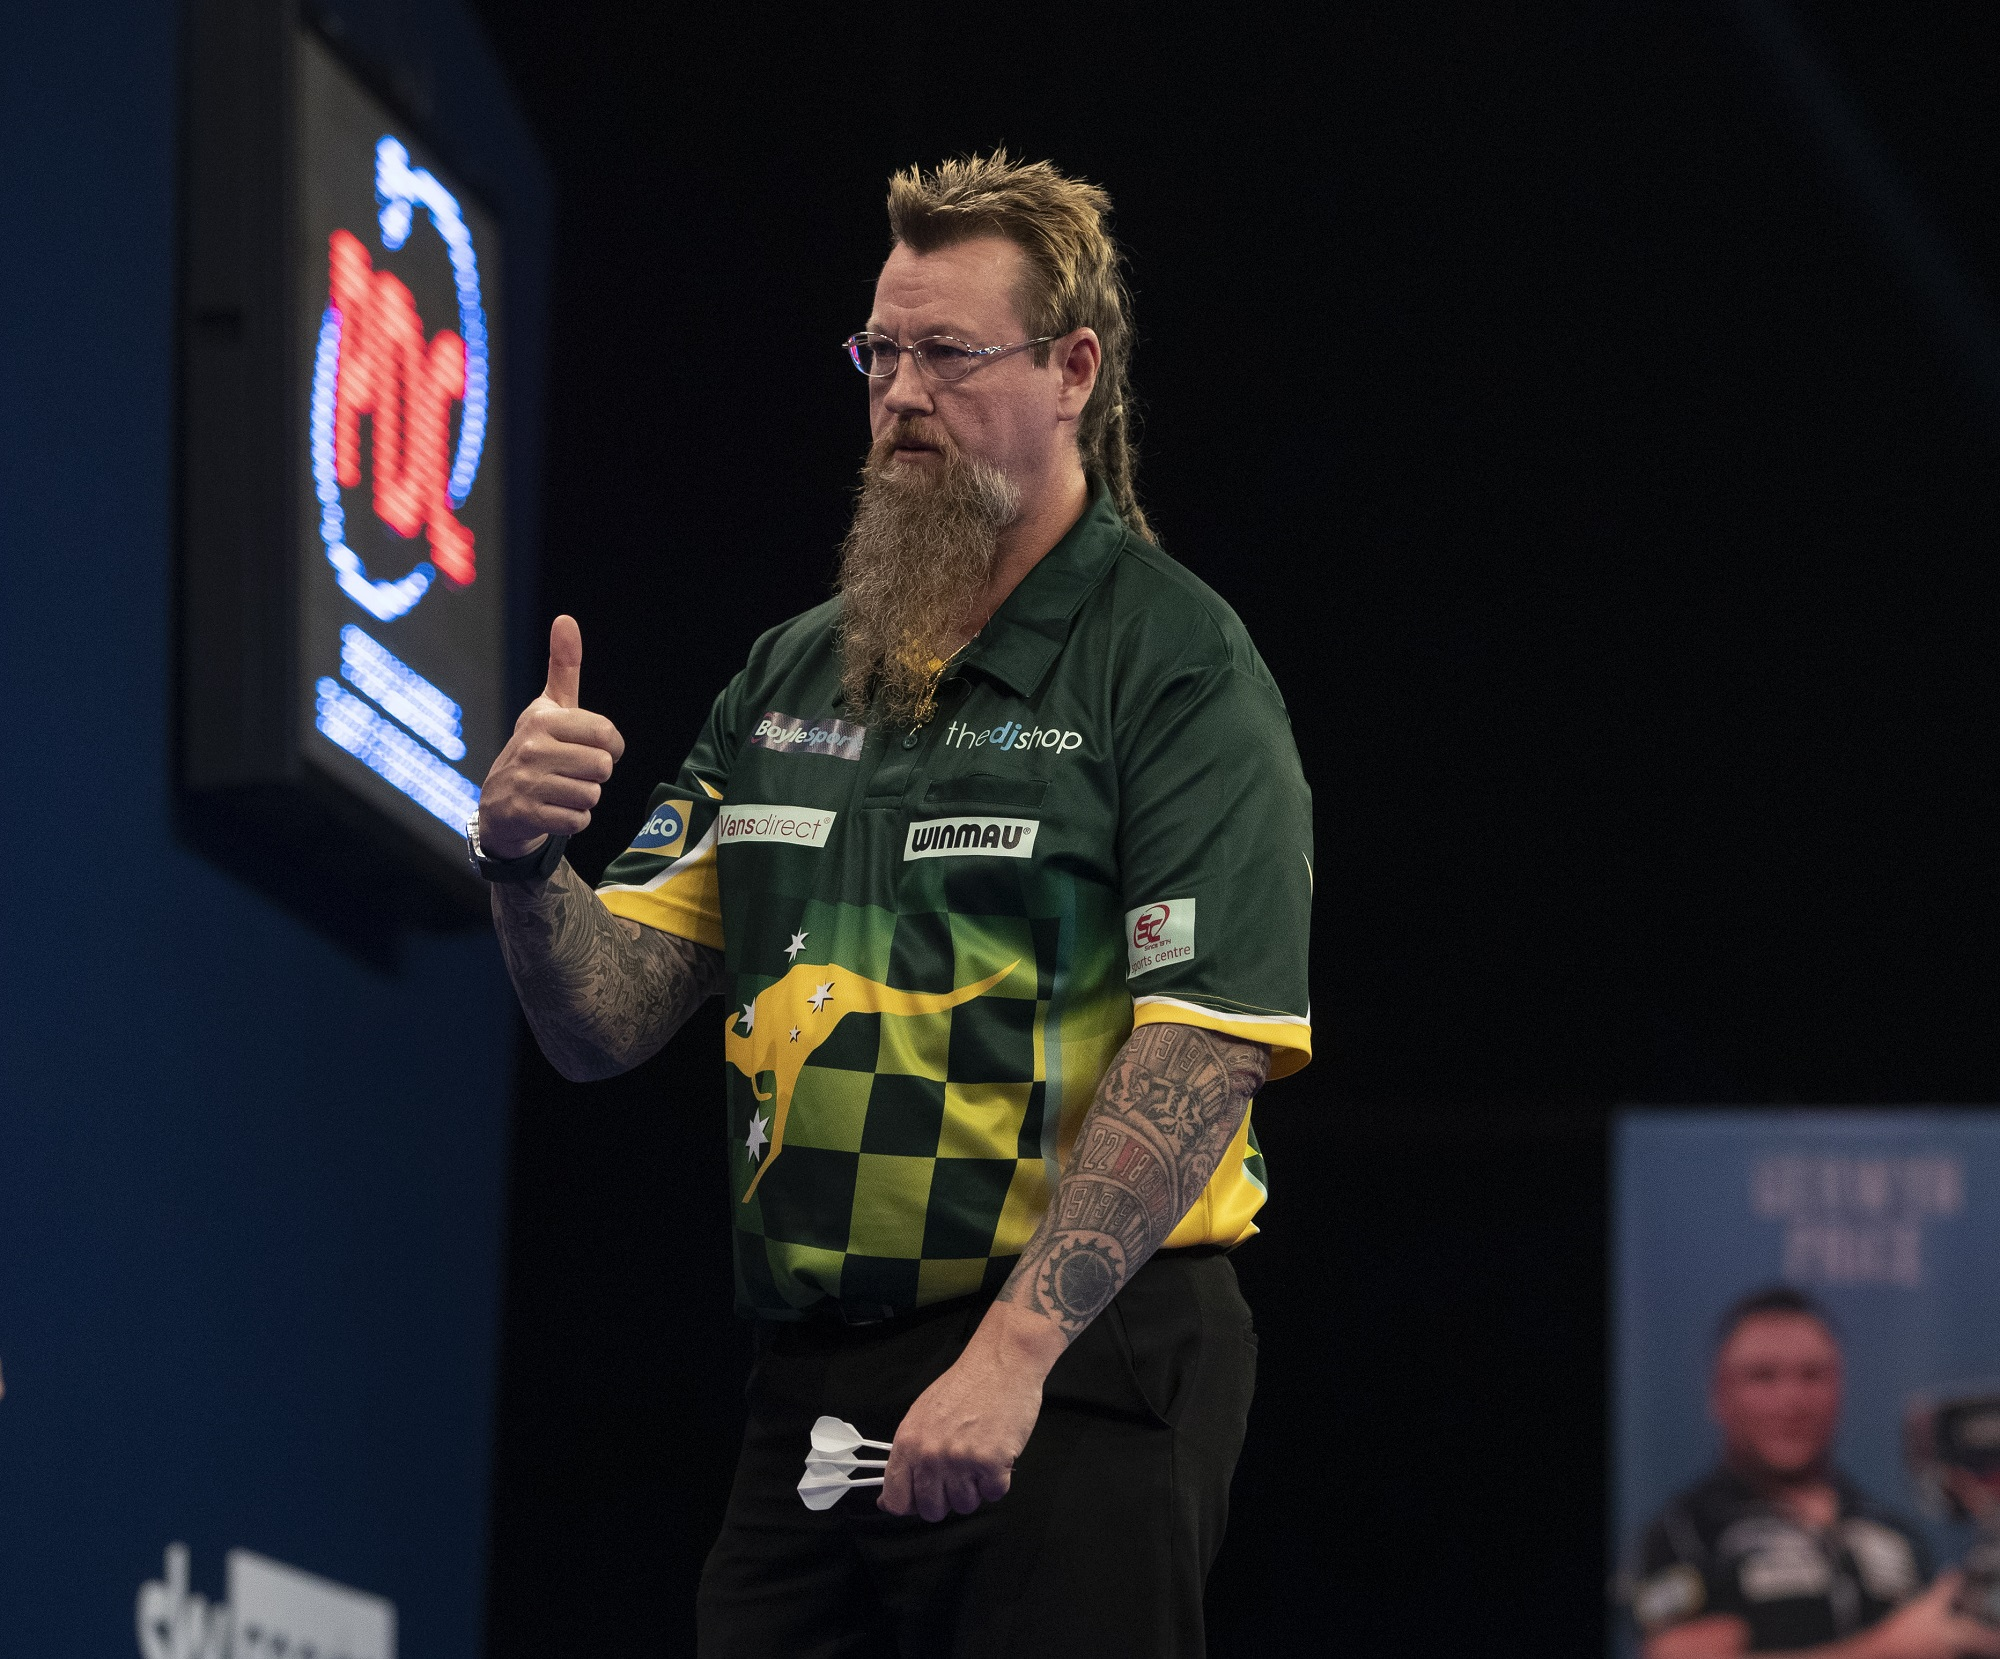 Whitlock outlasts MvG in Grand Slam quarter final classic